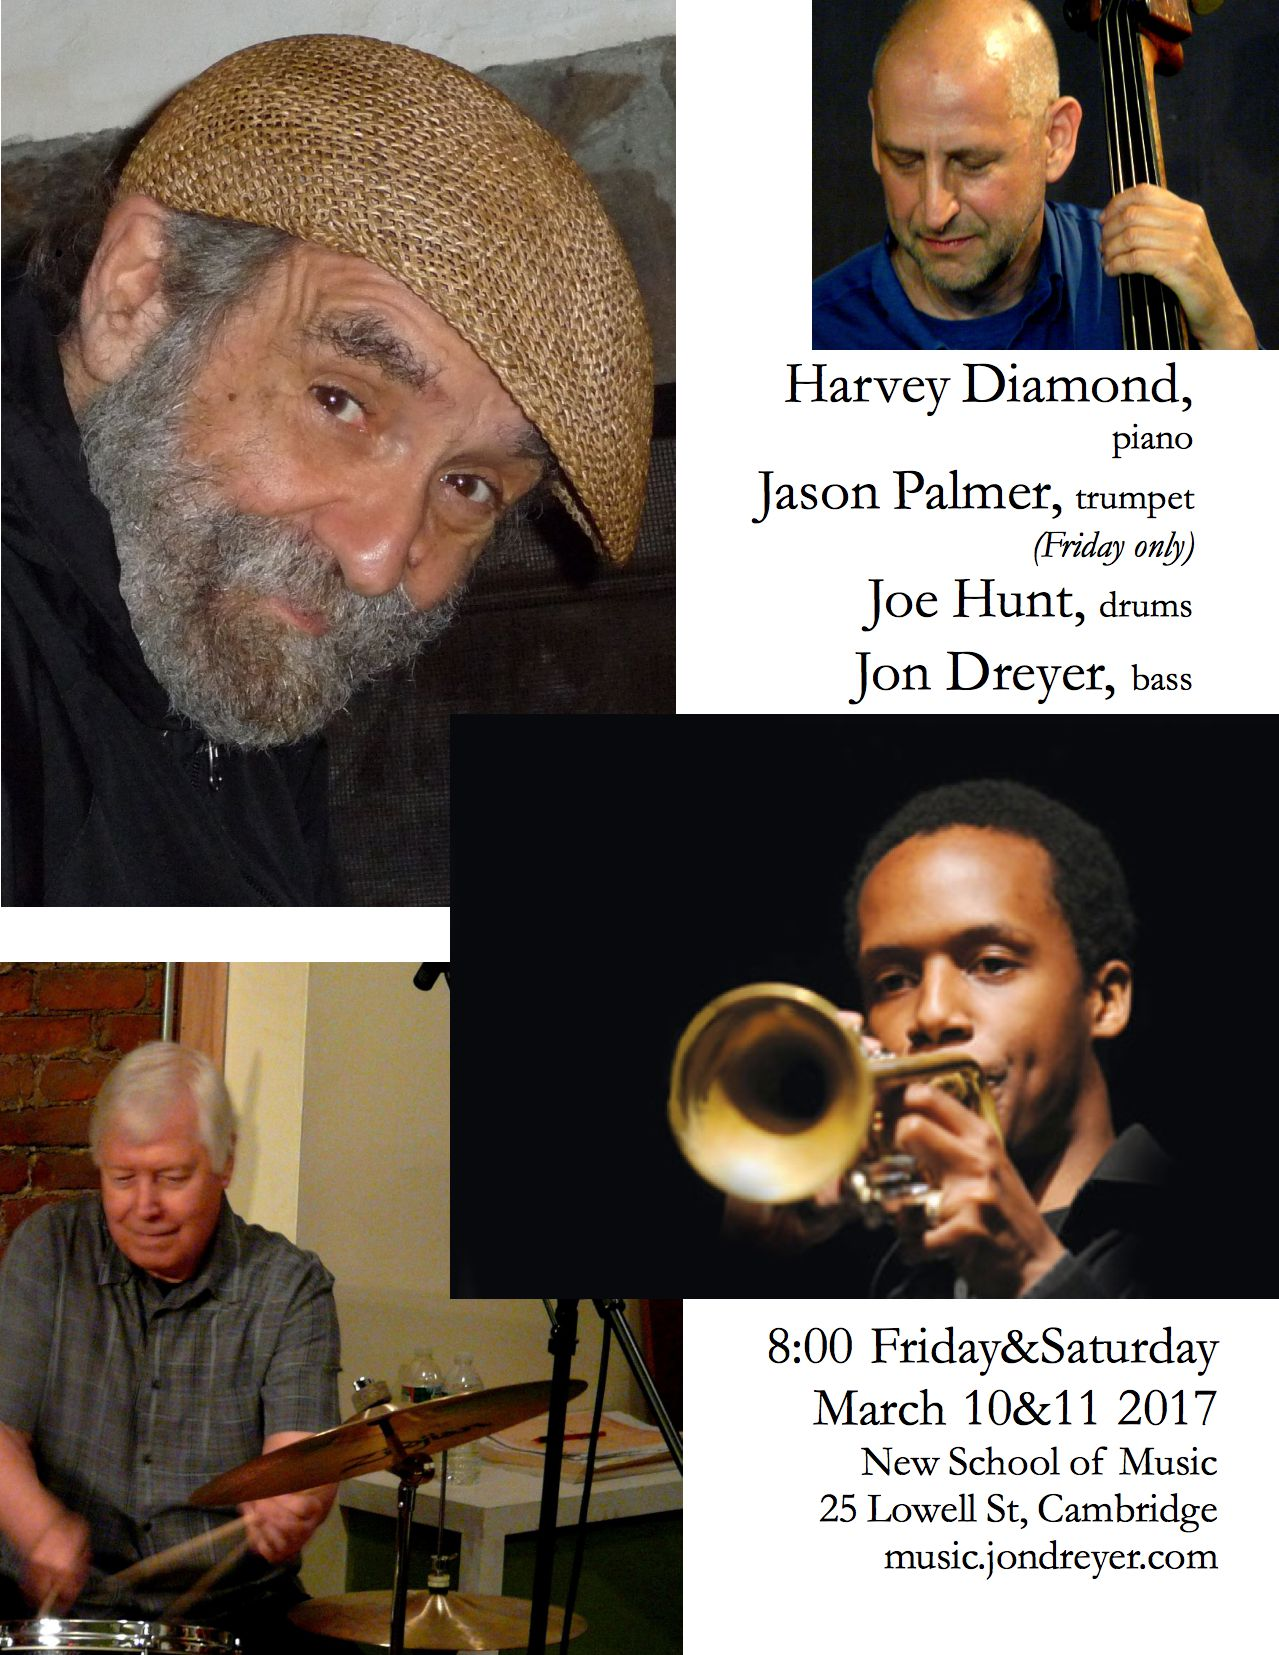 Flyer for March 10/11 2017 Harvey Diamond Trio/Quartet